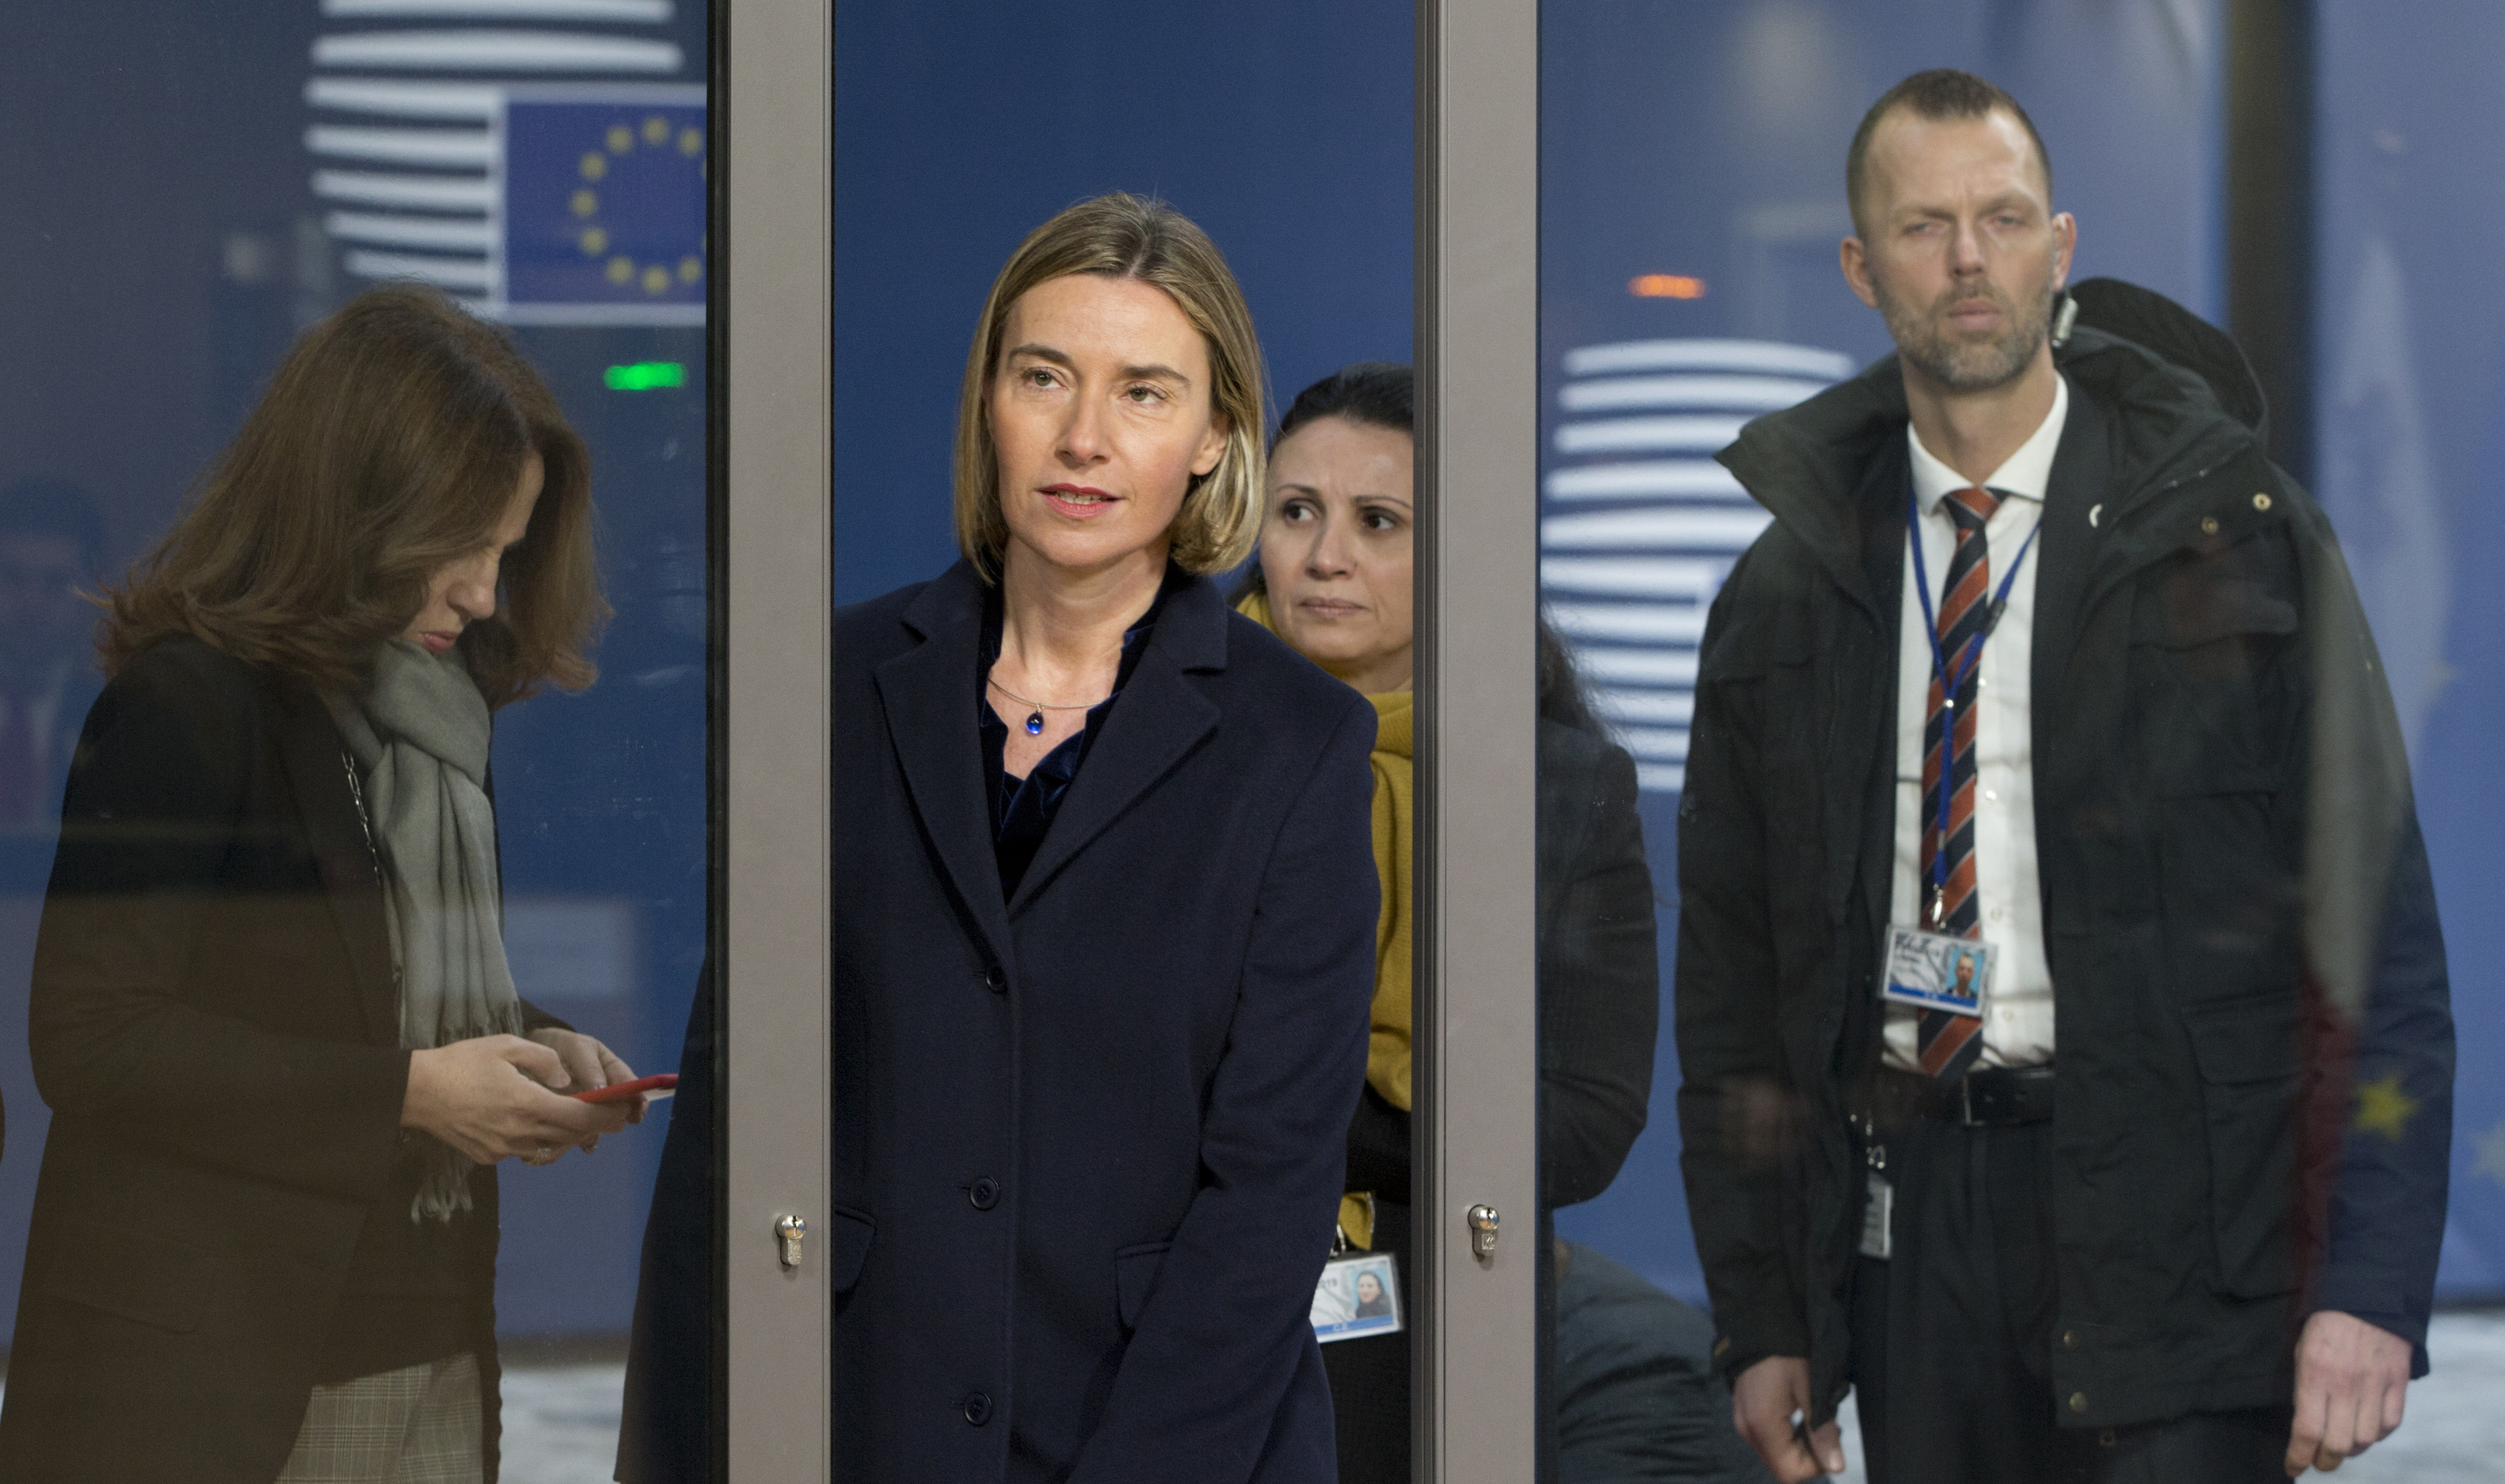 European Union foreign policy chief Federica Mogherini (C) arrives for a meeting of EU foreign ministers at the EU Council building on Feb. 6, 2017. (AP Photo/Virginia Mayo)